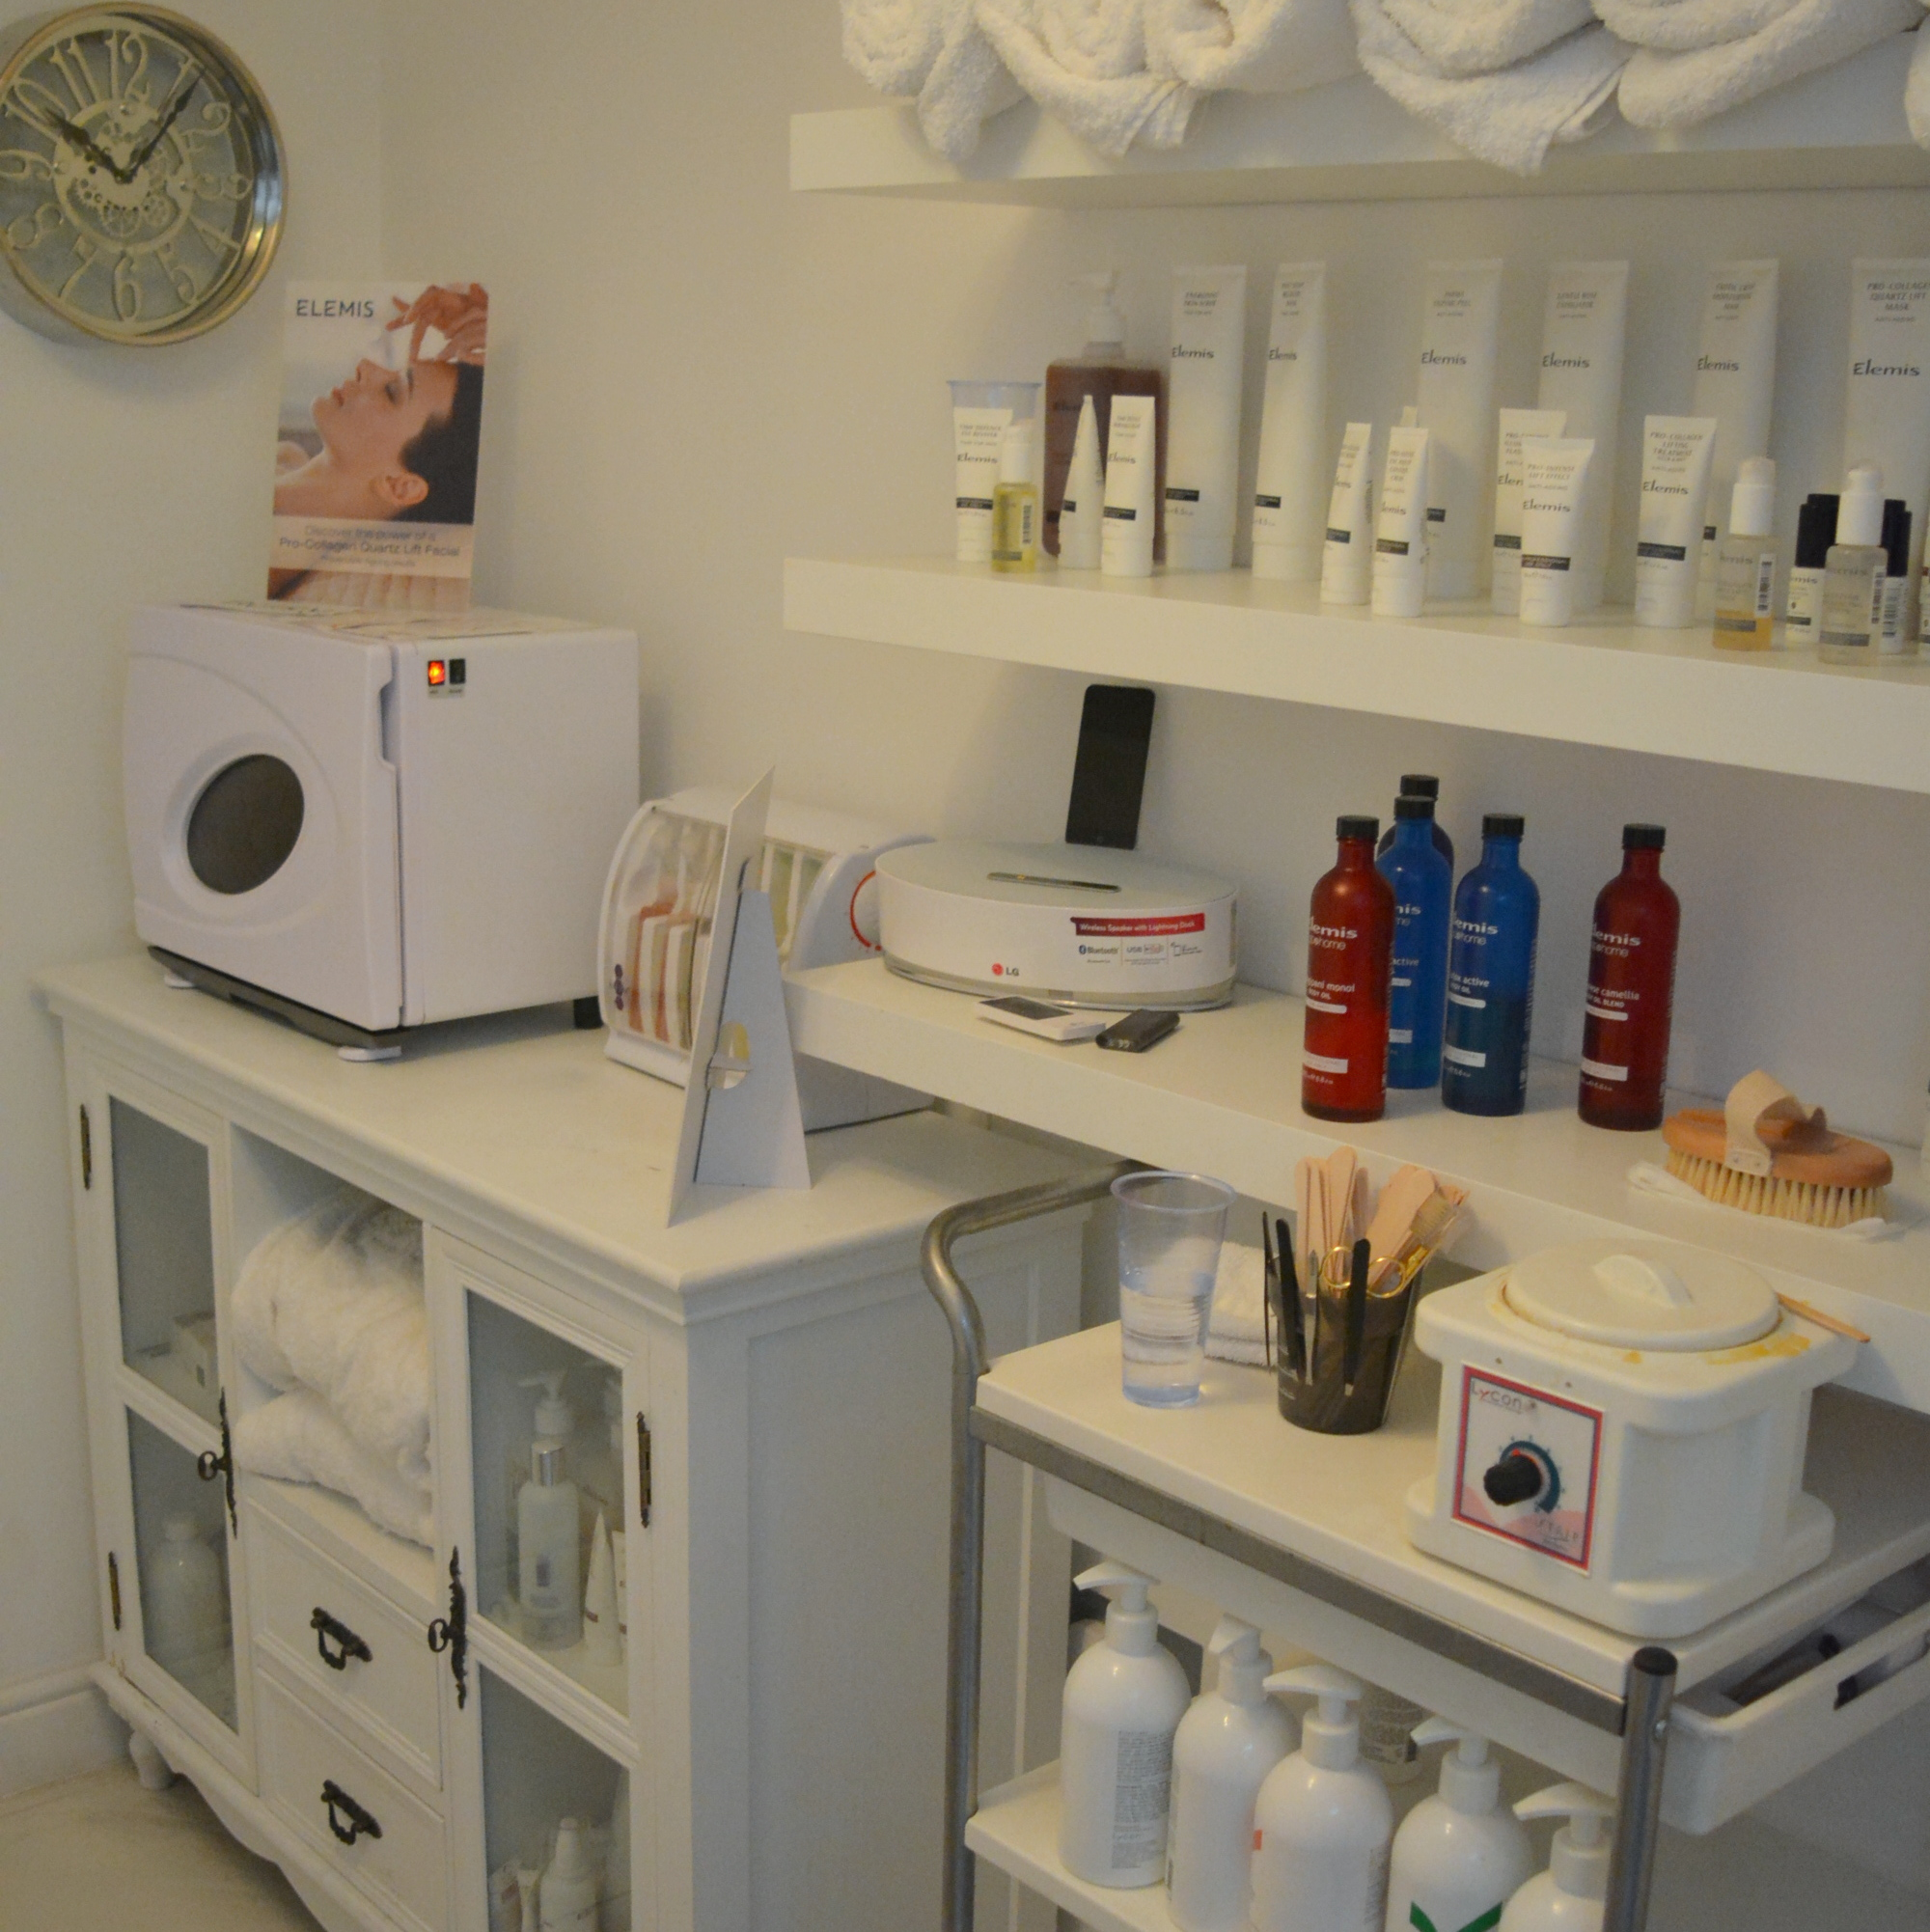 Talonted Lex Vos Beauty Salon Chelsea Review